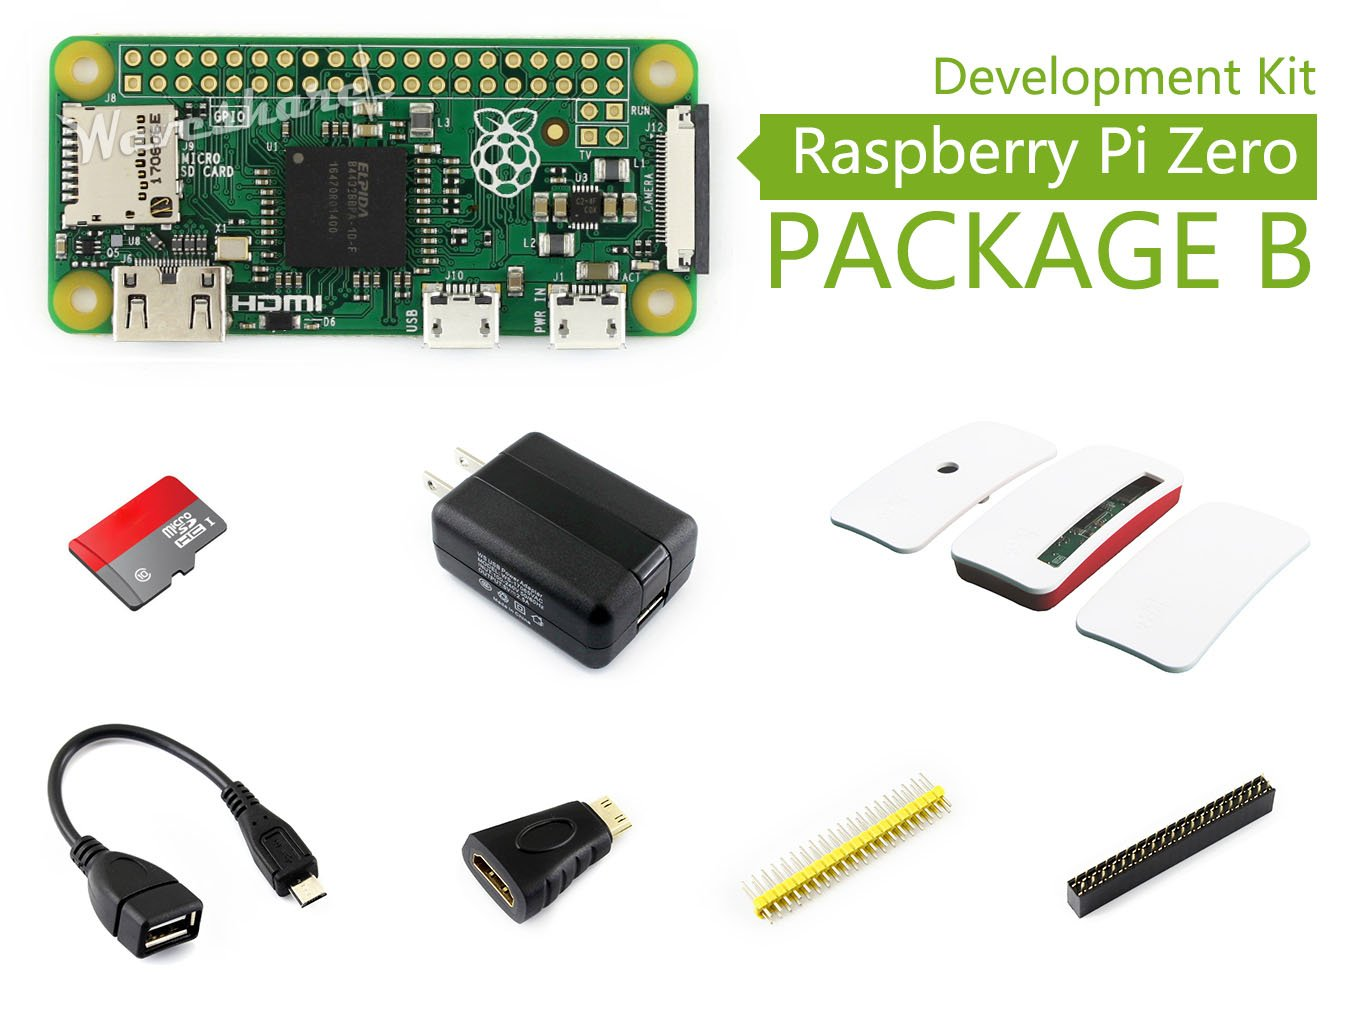 Waveshare Raspberry Pi Zero V1.3 1GHz CPU 512MB Pi 0 Package B Basic Development Kit Micro SD Card, Power Adapter, Official Case, Basic Components: Amazon.es: Electrónica